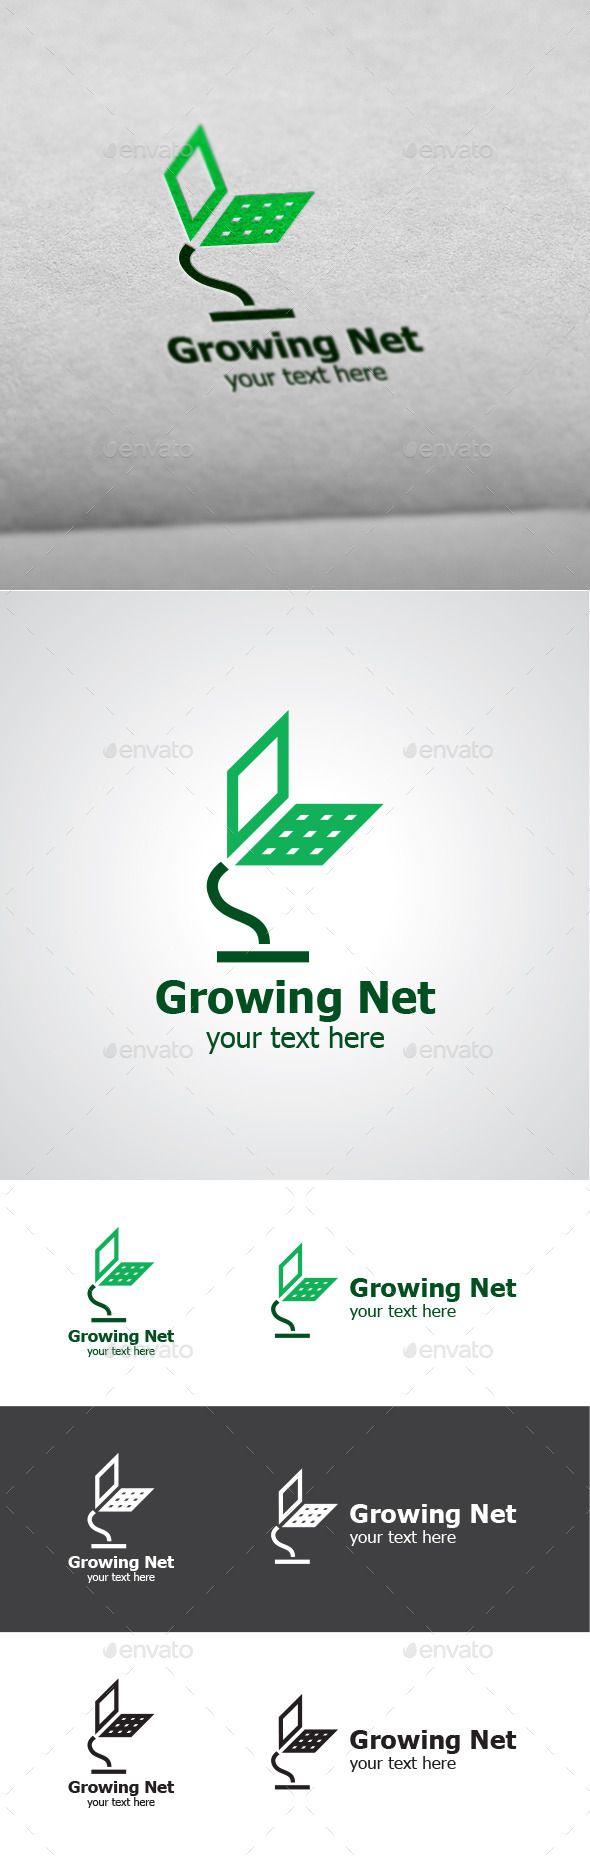 GraphicRiver Growing Net Vector Logo Design 9519131